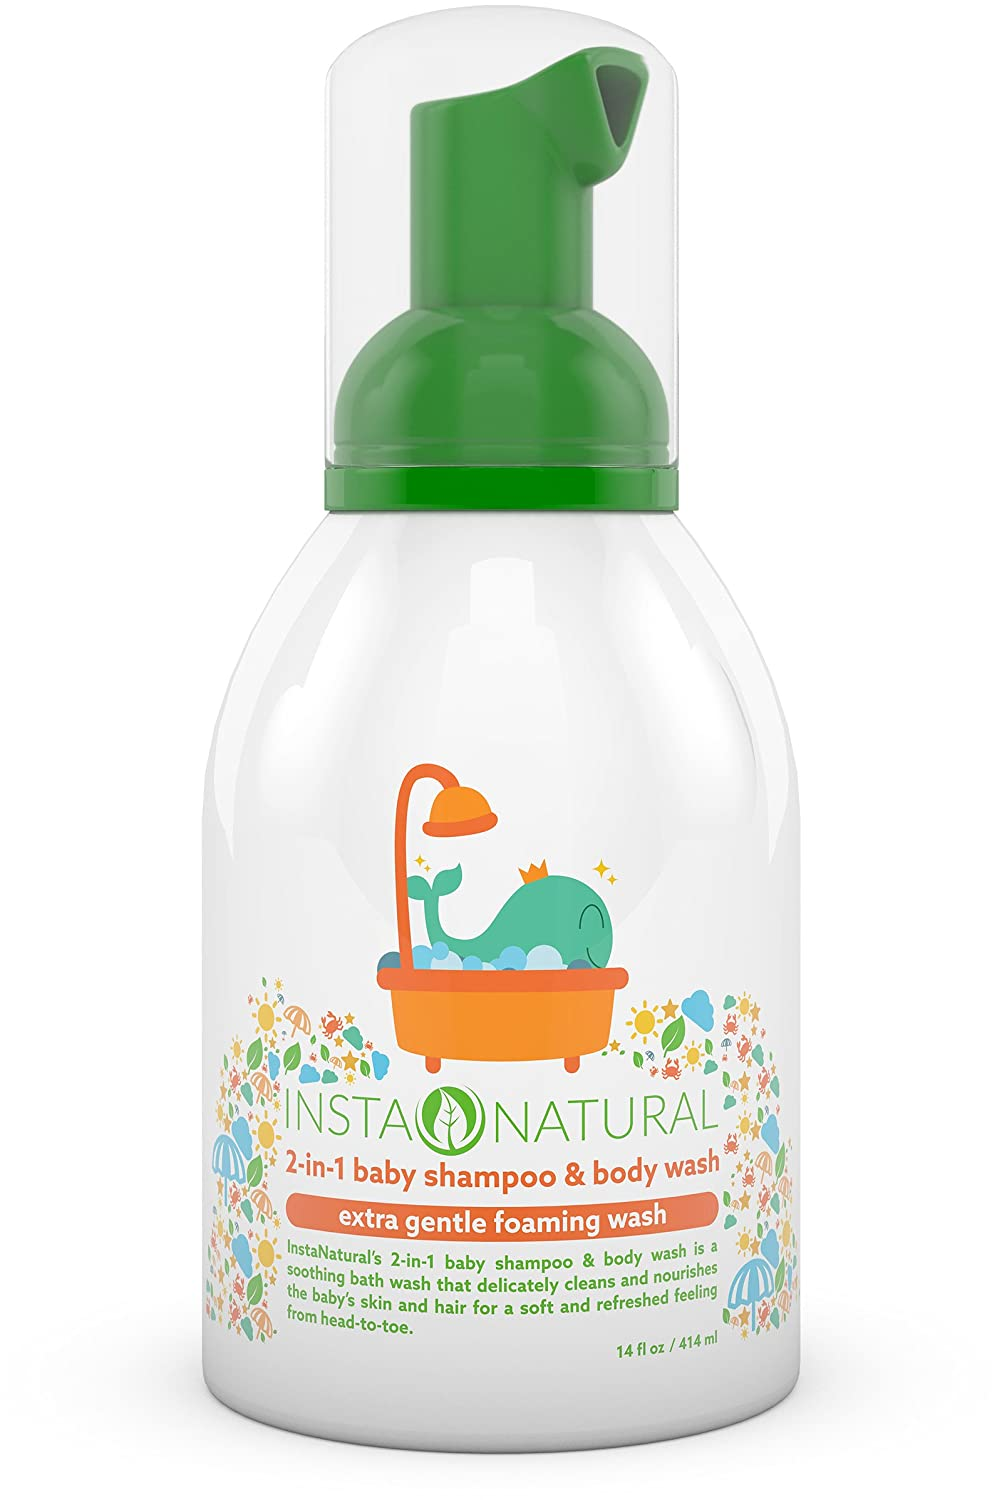 Instanatural Baby Shampoo Body Wash With Aloe Vera Vitamin E Cussons Oil Soft And Smooth 100 100ml Lavender Fruit Extracts Soothing 2 In 1 Formula For Skin Hair